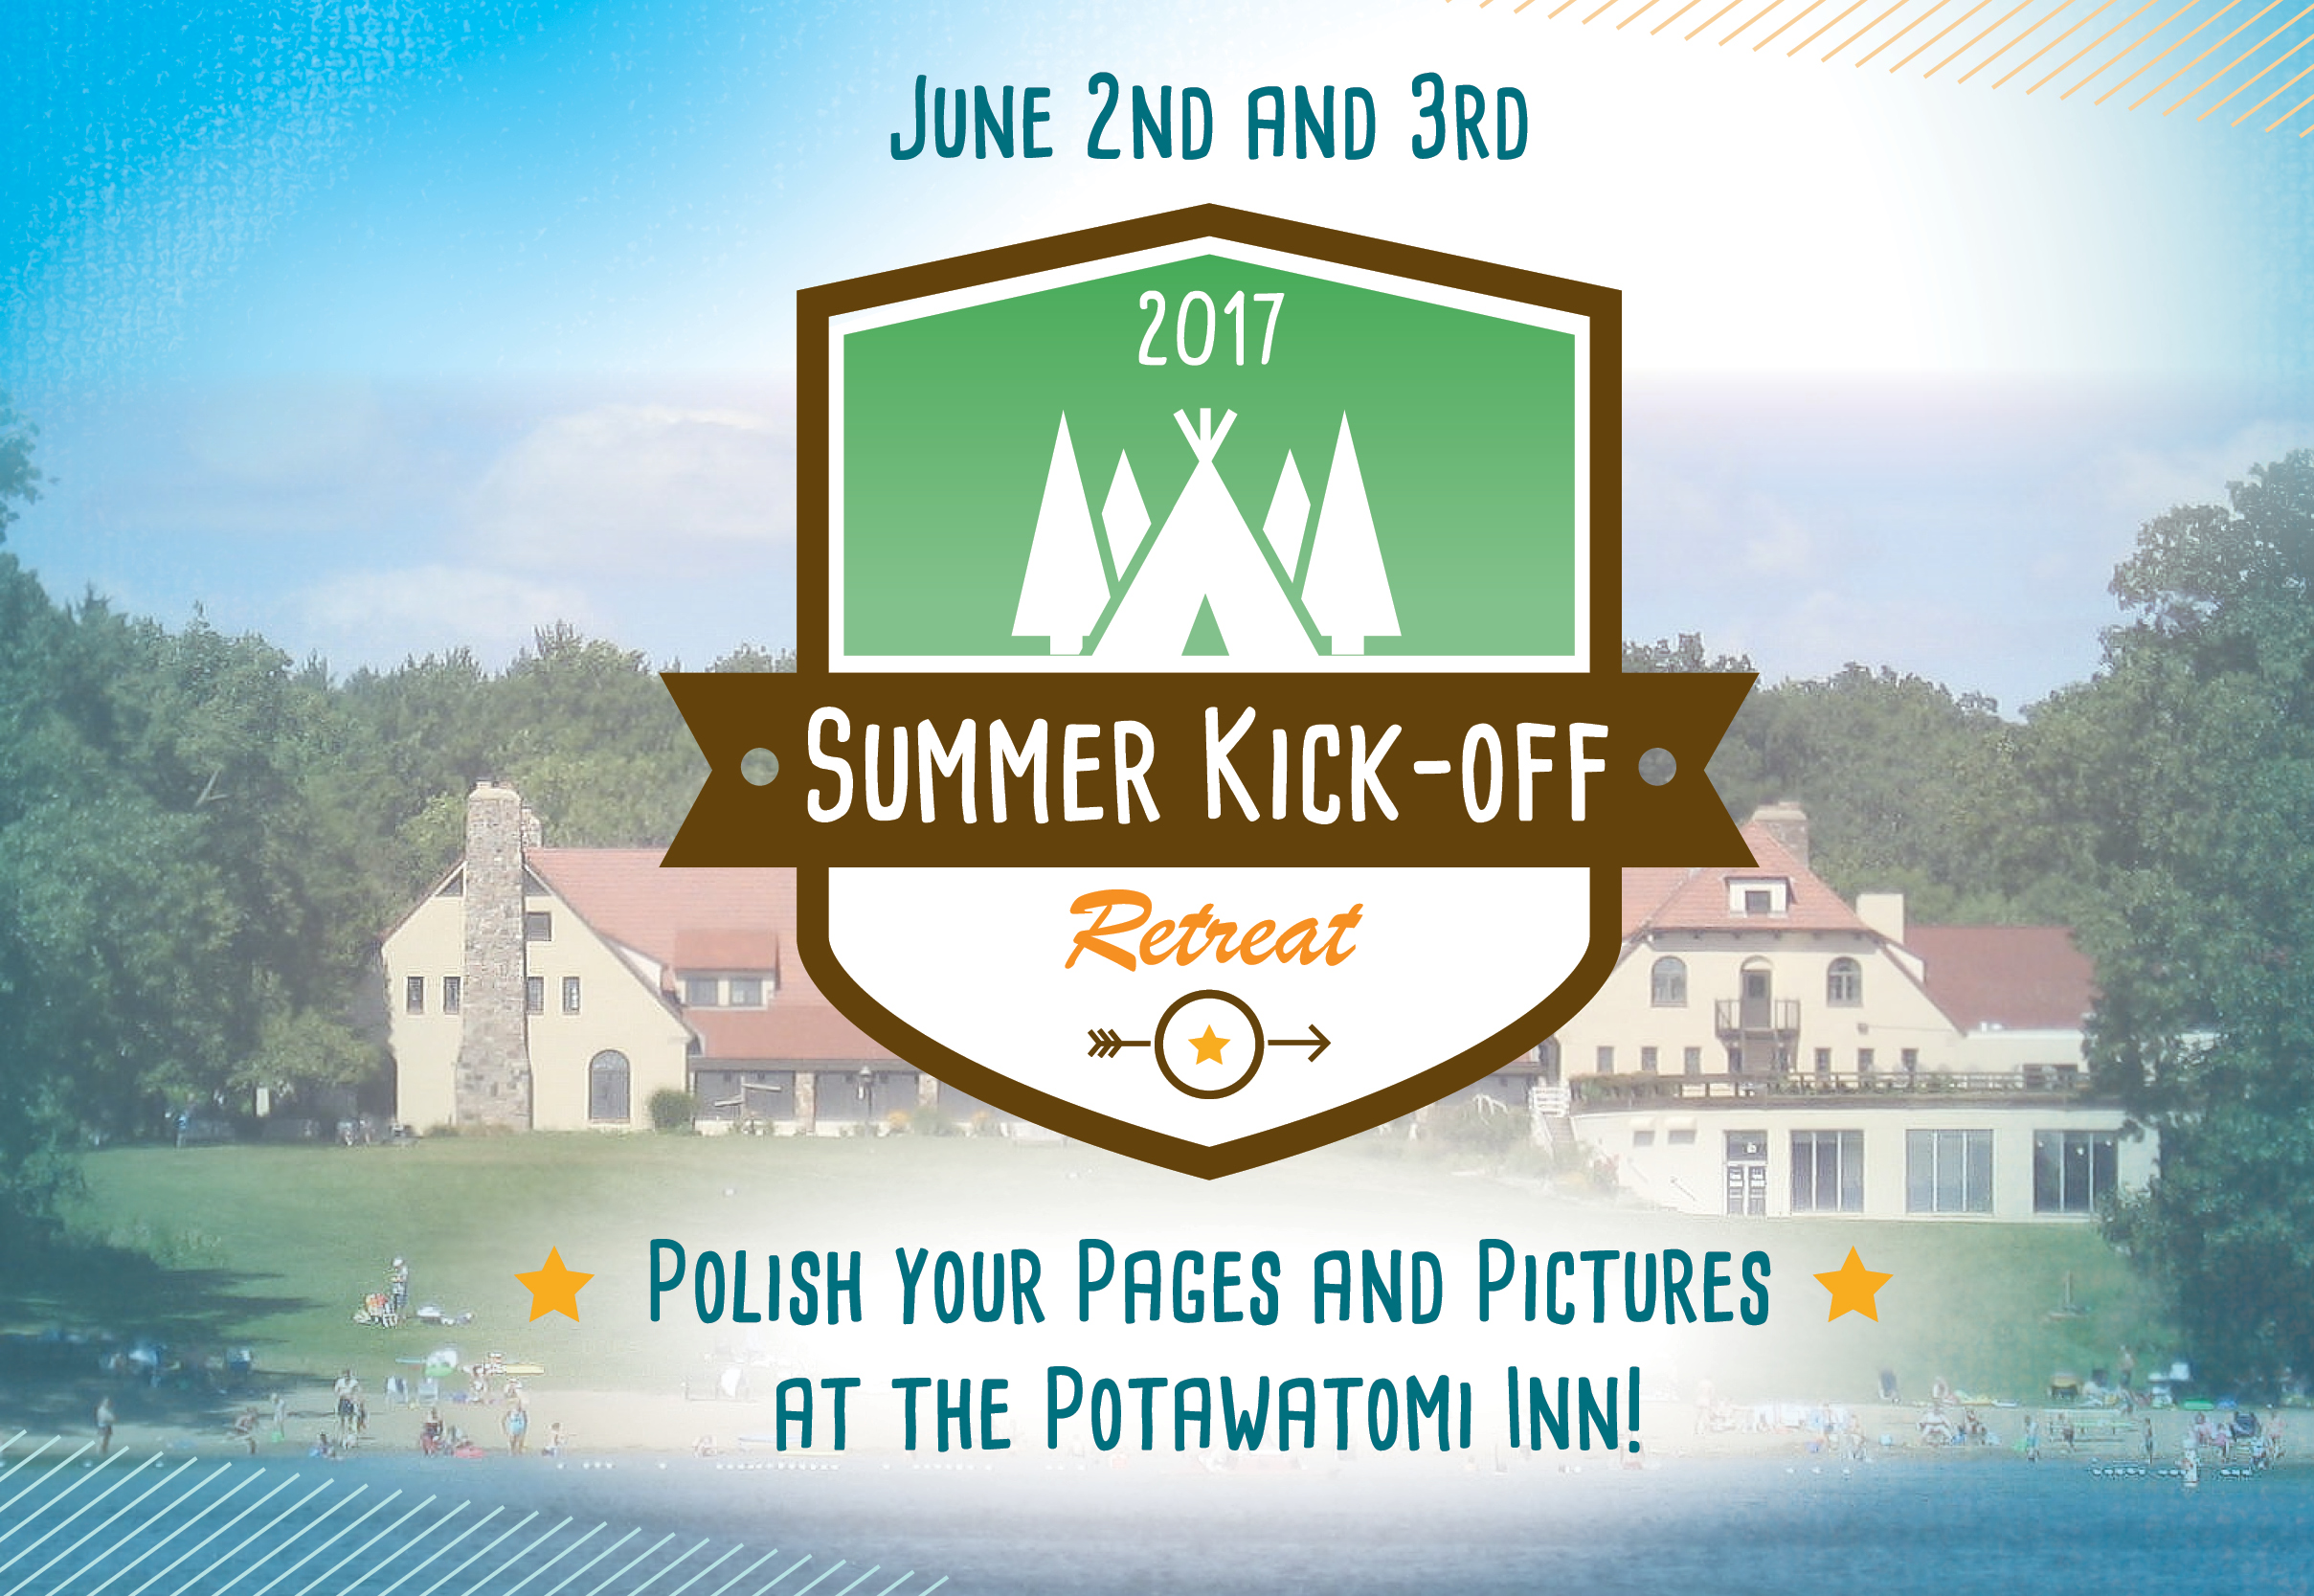 "Please join us for our 2017 SCBWI Summer Kick-Off Retreat at the Potawatomi Inn at Pokagon State Park near Angola, Indiana! We have an exciting line-up with editor Meredith Mundy, agent Danielle Smith, the amazing authors Tammi Sauer and Darcy Pattison, and talented illustrators/authors Troy Cummings and Deborah Marcero! You won't want to miss this opportunity. We are offering 2 hour intensives on Friday, June 2nd in the evening and an all day conference on Saturday, June 3rd.  Early bird registration opens February 8th! Regular registration begins March 1st and closes May 23rd. Click here to register. Hotel Info Potawatomi State Park 6 Ln 150 Lake James - Angola, IN, 46703 (260) 833-1077 http://www.in.gov/dnr/parklake/inns/potawatomi/ Room rate: $89 +tax Registration Pricing: Early Bird SCBWI Member (February 8th-28th): $120.00 Early Bird Non-SCBWI Member (February 8th-28th): $145.00 SCBWI Member Registration: $145.00 Non-SCBWI Member Registration: $170.00 Friday Intensives: $65.00 Critiques: $40.00 SCBWI Summer Kick-Off Retreat Schedule Friday, June 2nd, 2017 4:30pm-5:00pm – Registration 5:00pm-6:00pm – Pizza dinner provided for those attending intensives only 6:00pm-8:00pm – Intensive Choices Meredith Mundy, Tammi Sauer, Troy Cummings – Picture book Teamwork     ◦    Learn the role of an editor, seeking a fabulous manuscript and what it takes to acquire one, find out the author's role in creating and getting a manuscript acquired, and combine that with the role and vision of the illustrator.  Meredith Mundy, editor for Sterling Books, Tammi Sauer, author, and Troy Cummings, author/illustrator, will do just this as they share their process of creating the book, Caring for Your Lion.  Visuals and handouts will be provided, as well as time for Q&A at the conclusion. Danielle Smith- Telling Your Story from the Start     ◦    In this hands-on presentation packed with examples and exercises Lupine Grove Creative agent, Danielle Smith, will explore ways in which you as a writer can not only follow your writing heart, but also find success in your endeavors. With the end goal being that you will leave energized, prepared and in love with what you have to offer the world. Each of us brings something unique to the table, be it years of experience writing or simply loving the craft, but we all have a passion for children's literature. Whether you are pre-published author, an award winning illustrator, a best-selling author or simply starting from the beginning, your story matters! But knowing how and sometimes which book to put forward is the toughest choice of all. How is your book going to be discovered? By agents? By publishers? By librarians and booksellers? By bloggers and readers? Knowing how to talk about your book is crucial — and somewhat different — at every step in the process. Every writer should come prepared with at least one finished picture book manuscript and one picture book pitch/query. We will spend a large portion of our time unpacking, editing and honing your manuscript in hopes that you will leave with a wonderful new chapter in your writing process.  Darcy Pattison– Anyone Can Write a Great Chapter - How to See Your Novel's Structure     ◦    Using the magic of computers, we'll shrink manuscript, spreadsheet 'em, and bring them into focus. Strategies for making the structure of a novel visible, so the story comes alive and keeps readers turning pages. Saturday, June 3rd, 2017 7:00 – 8:30 – Breakfast buffet at hotel 8:30-9:00 – Registration 9:00-9:45 – Kick-off Keynote with agent, Danielle Smith 9:50-10:35 – General session – Competing with Mo Willems- Darcy Pattison 10:35-10:45- Break 10:45 – 11:00 – Making Smart Dummies – Troy Cummings 11:00-11:15-Break and travel to sessions 11:15-12:00– Break out sessions     •    Meredith – Picture Book First Lines     •    Danielle – The Business of Writing     •    Darcy – Indy Publishing Today     •    Tammi – Picture book Plotting 12:00-1:00 – Lunch Buffet 1:00-3:00 – Time to polish your pictures and pages! Paid face-to-face critiques will take place during this time, optional free peer critique round tables will be running, take time inside our outside of the beautiful resort to work on something you just learned, or shop in the bookstore! 3:00-3:45 – Closing keynote with Tammi Sauer 3:45 – Closing remarks and door prizes 4:00-5:00 – Book signing *Times are subject to change if necessary Bookstore The bookstore will be open Saturday during the conference to purchase books by our speakers and PAL members. If you are a PAL (Published And Listed) member of SCBWI attending the conference, you may submit one PAL book title for sale at our conference bookstore. Please email your PAL title and its ISBN# by May 1st to: Sharon Vargo at indiana-ic@scbwi.org with "" SCBWI Summer PAL Title"" in the subject line. Manuscript Critques A limited number of manuscript critiques are available from conference faculty for $40 each. They will be 20 minute one-on-one sessions with written comments included. If you have registered and paid for a critique: • For picture books, attach the entire manuscript, for MG and YA, please send 10 pages and a one page synopsis.  ​(Do not include photos or illustrations.) • Use 12-point font, Times New Roman, doublespaced, 1-inch margins • Number and include your name on each page. • Include the specific genre on the first page at the top. • Manuscripts must be received by May 1st via email with ""INSCBWI Manuscript (last name)"" in the subject line to: kmitschelen@hotmail.com  • Late submissions will not be accepted. *Keep in mind that critiques are usually in high demand and the slots may fill up quickly. Portfolio Critiques A limited number of one-on-one 20 minute portfolio critiques will be available on a first come basis.  Simply register for a portfolio critique and we will let you know the exact time of your consultation at registration. A total of 10 images will be reviewed. Please keep the 10 images you would like reviewed in the front pages of your portfolio to make the best use of your critique time. *Keep in mind that critiques are usually in high demand and the slots may fill up quickly. Portfolio Display No added charge. Drop off your portfolio on the table marked, ""Portfolio Display"" during registration on Saturday morning. The faculty will mark their favorite illustration in every portfolio.  You may also bring promotional postcards as handouts. Please pick up your portfolio before lunch at noon.  We are not responsible for your portfolio. Have your name on each page of your portfolio.  No original artwork, framed art, easels or props are permitted. Have high-quality color copies of your illustrations that are appropriate for children's books.  Summer Kick-Off Retreat Faculty Troy Cummings / Author/Illustrator Troy Cummings has been writing and illustrating since he was a little kid. Among other things, he's the creator of  GIDDY-UP, DADDY!, the tale of a man mistaken for a horse, and THE NOTEBOOK OF DOOM, an early-reader chapter book series about a kid who moves to a town full of monsters. Troy Cummings lives in Greencastle, Indiana with his nice family and mean cat.   Meredith Mundy / Editor  Meredith Mundy has been editing books for young readers for 22 years, and hopes to continue doing so for at least 22 more! Following a decade at Dutton Children's Books, she is now executive editor at Sterling Children's Books, where she has been acquiring everything from board books to young adult novels. She has had the pleasure of working with such talented authors as Tammi Sauer, Kim Norman, Linda Ashman, Tara Lazar, Jim Arnosky, John Briggs, and Karen Kaufman Orloff. Originally from Colorado Springs, Colorado, Meredith went to Smith College for an undergraduate degree in Comparative Literature/Studio Art, and to NYU for an MFA in Creative Writing, which gave her the best possible glimpse of what life is like on the other side of the desk. She lives in Jersey City, New Jersey, with her graphic designer husband, Richard, and their red tabby, Martha.   Darcy Pattison / Author Storyteller, writing teacher, Queen of Revisions, and founder of Mims House (www.mimshouse.com) publisher, Darcy Pattison has been published in nine languages. Her books, published with Harcourt, Philomel/Penguin, Harpercollins, Arbordale, and Mims House have received recognition for excellence with starred reviews in Kirkus, BCCB and PW. Three of her books have been honored as National Science Teacher's Association Outstanding Science Trade books. The Journey of Oliver K. Woodman (Harcourt) received an Irma Simonton Black and James H. Black Award for Excellence in Children's Literature Honor Book award, and has been published in a Houghton Mifflin textbook. Darcy is the 2007 recipient of the Arkansas Governor's Arts Award for Individual Artist for her work in children's literature.   Tammi Sauer / Author  Tammi Sauer is a full time children's book author who also presents at schools and conferences across the nation. She has sold 28 picture books to major publishing houses including Disney*Hyperion, HarperCollins, Houghton Mifflin Harcourt, Penguin Random House, Simon & Schuster, and Sterling. In addition to winning awards, Tammi's books have gone on to do great things. CHICKEN DANCE:  THE MUSICAL is currently on a national tour, NUGGET & FANG was a featured book at the 2015 Scholastic Book Fair, and YOUR ALIEN, an NPR Best Book of 2015, was recently released in Italian, Spanish, Korean, and French which makes her feel extra fancy. You can learn more about Tammi and her books at tammisauer.com.     Danielle Smith / Agent Danielle Smith is the mother of two wonderful children and wife to a practicing attorney. She began her agent career at Fuse Literary in 2013, but made the move to Red Fox Literary in March of 2014 where she represented children's book authors and illustrators alongside her mentor and partner at Red Fox Literary LLC, Abigail Samoun. In January of 2017 she left Red Fox Literary to form her own agency, Lupine Grove Creative, LLC with the hope of continuing to nurture creatives in a supportive and intuitive environment that brings about books children will love for generations to come. Danielle's publishing career began with her well known book reviews and articles, of which many can still be found at There's A Book. Additionally she wrote for print & online publications such as Women's World and Parenting Magazine. She's an author, literacy advocate, professional flutist and movie lover. Danielle has also served as a judge for the Cybils Awards in the picture book category for three years as well as for the INSPYs and various other writing competitions."